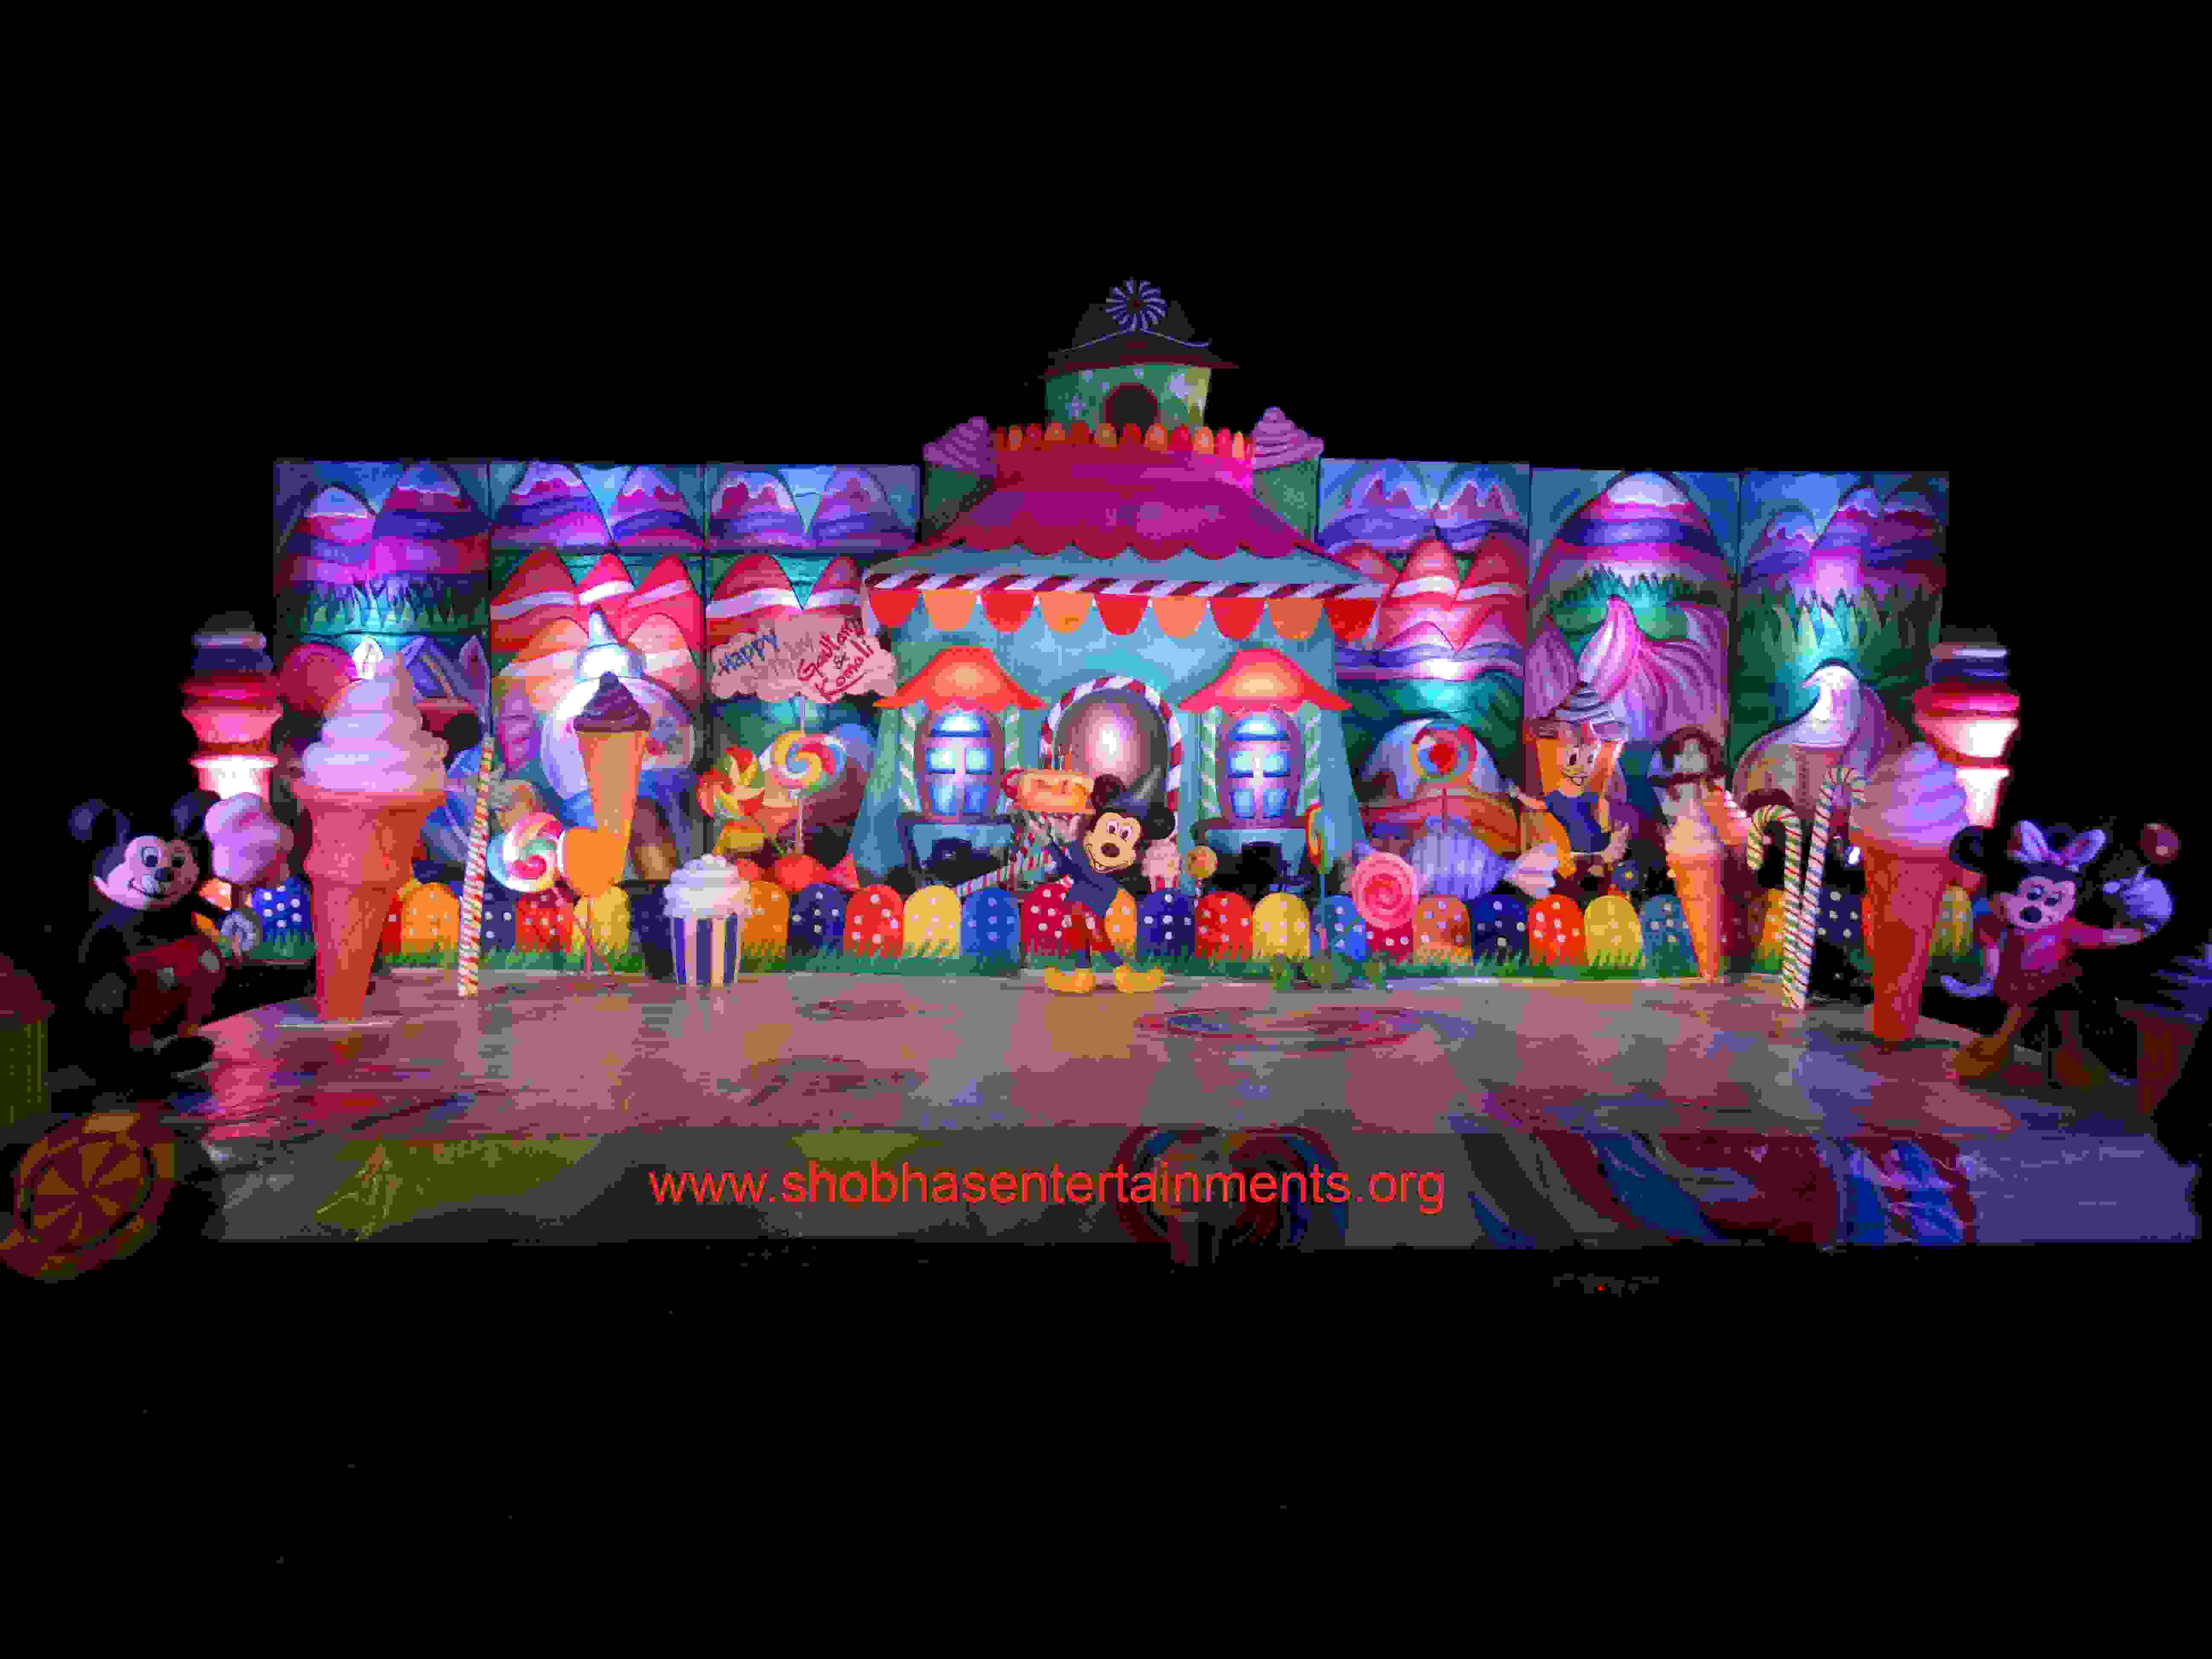 Event organisers in hyderabad and kids birthday party organisers